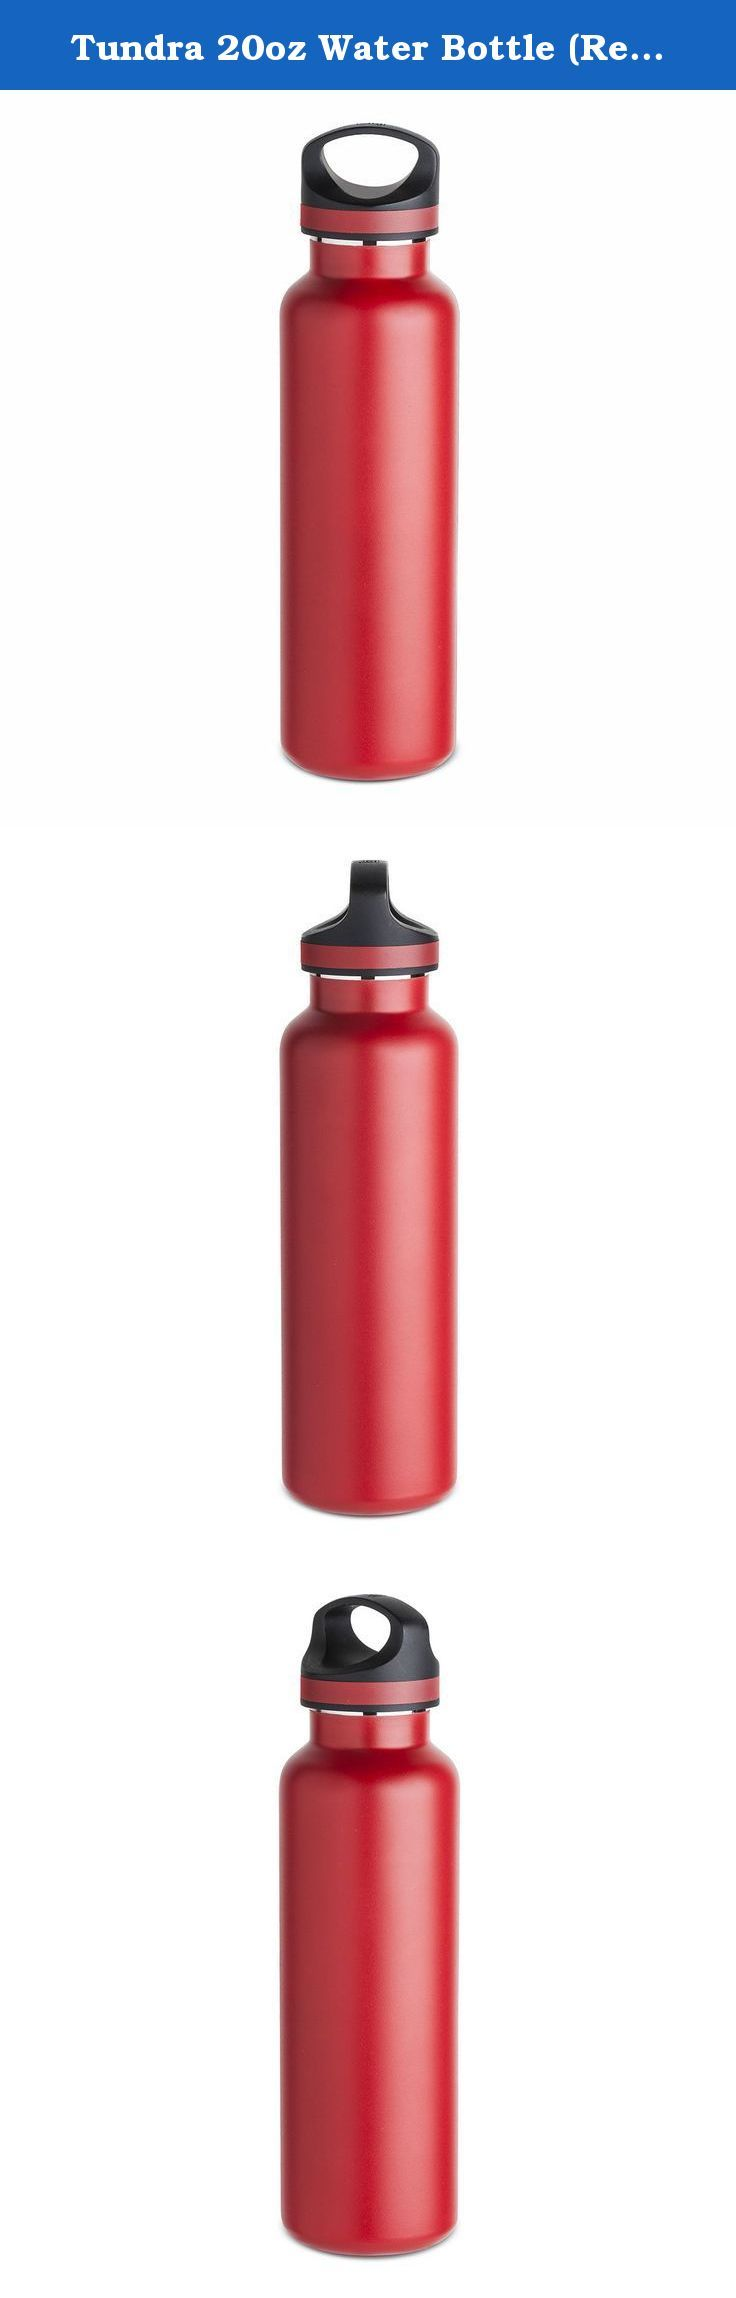 Tundra 20oz Water Bottle (Red) Double Wall, Vacuum Sealed, Copper Lined Stainless Steel Water Bottle. With a narrow mouth and vacuum insulation, the Tundra 20oz Bottle is perfect for keeping your drinks COLD (24 hours) or HOT (12 hours) while you're on the go! The matte powder coat finish gives the Tundra a smooth sleek look. It has a copper lining, double wall made of 18/8 stainless steel, and a proprietary insulated lid. BPA free!.